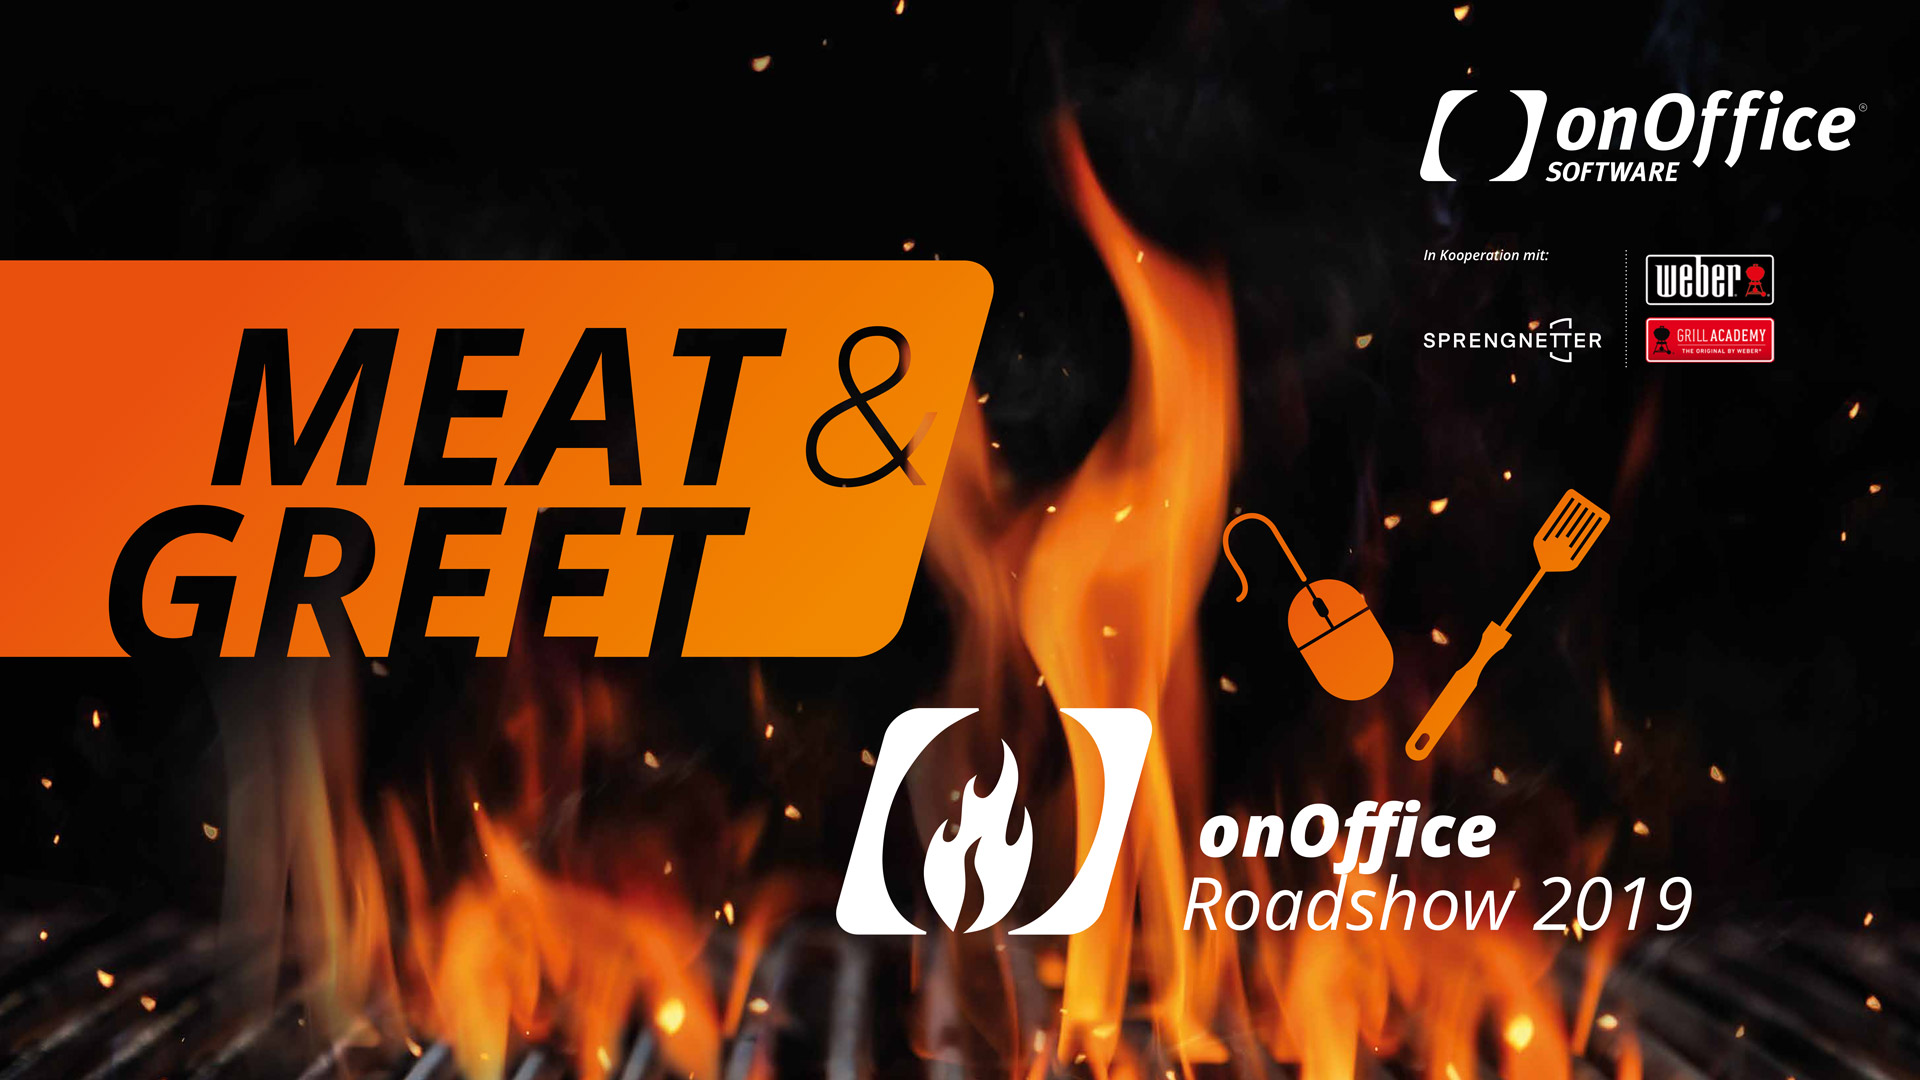 onOffice Roadshows 2019 – Meet & Greet